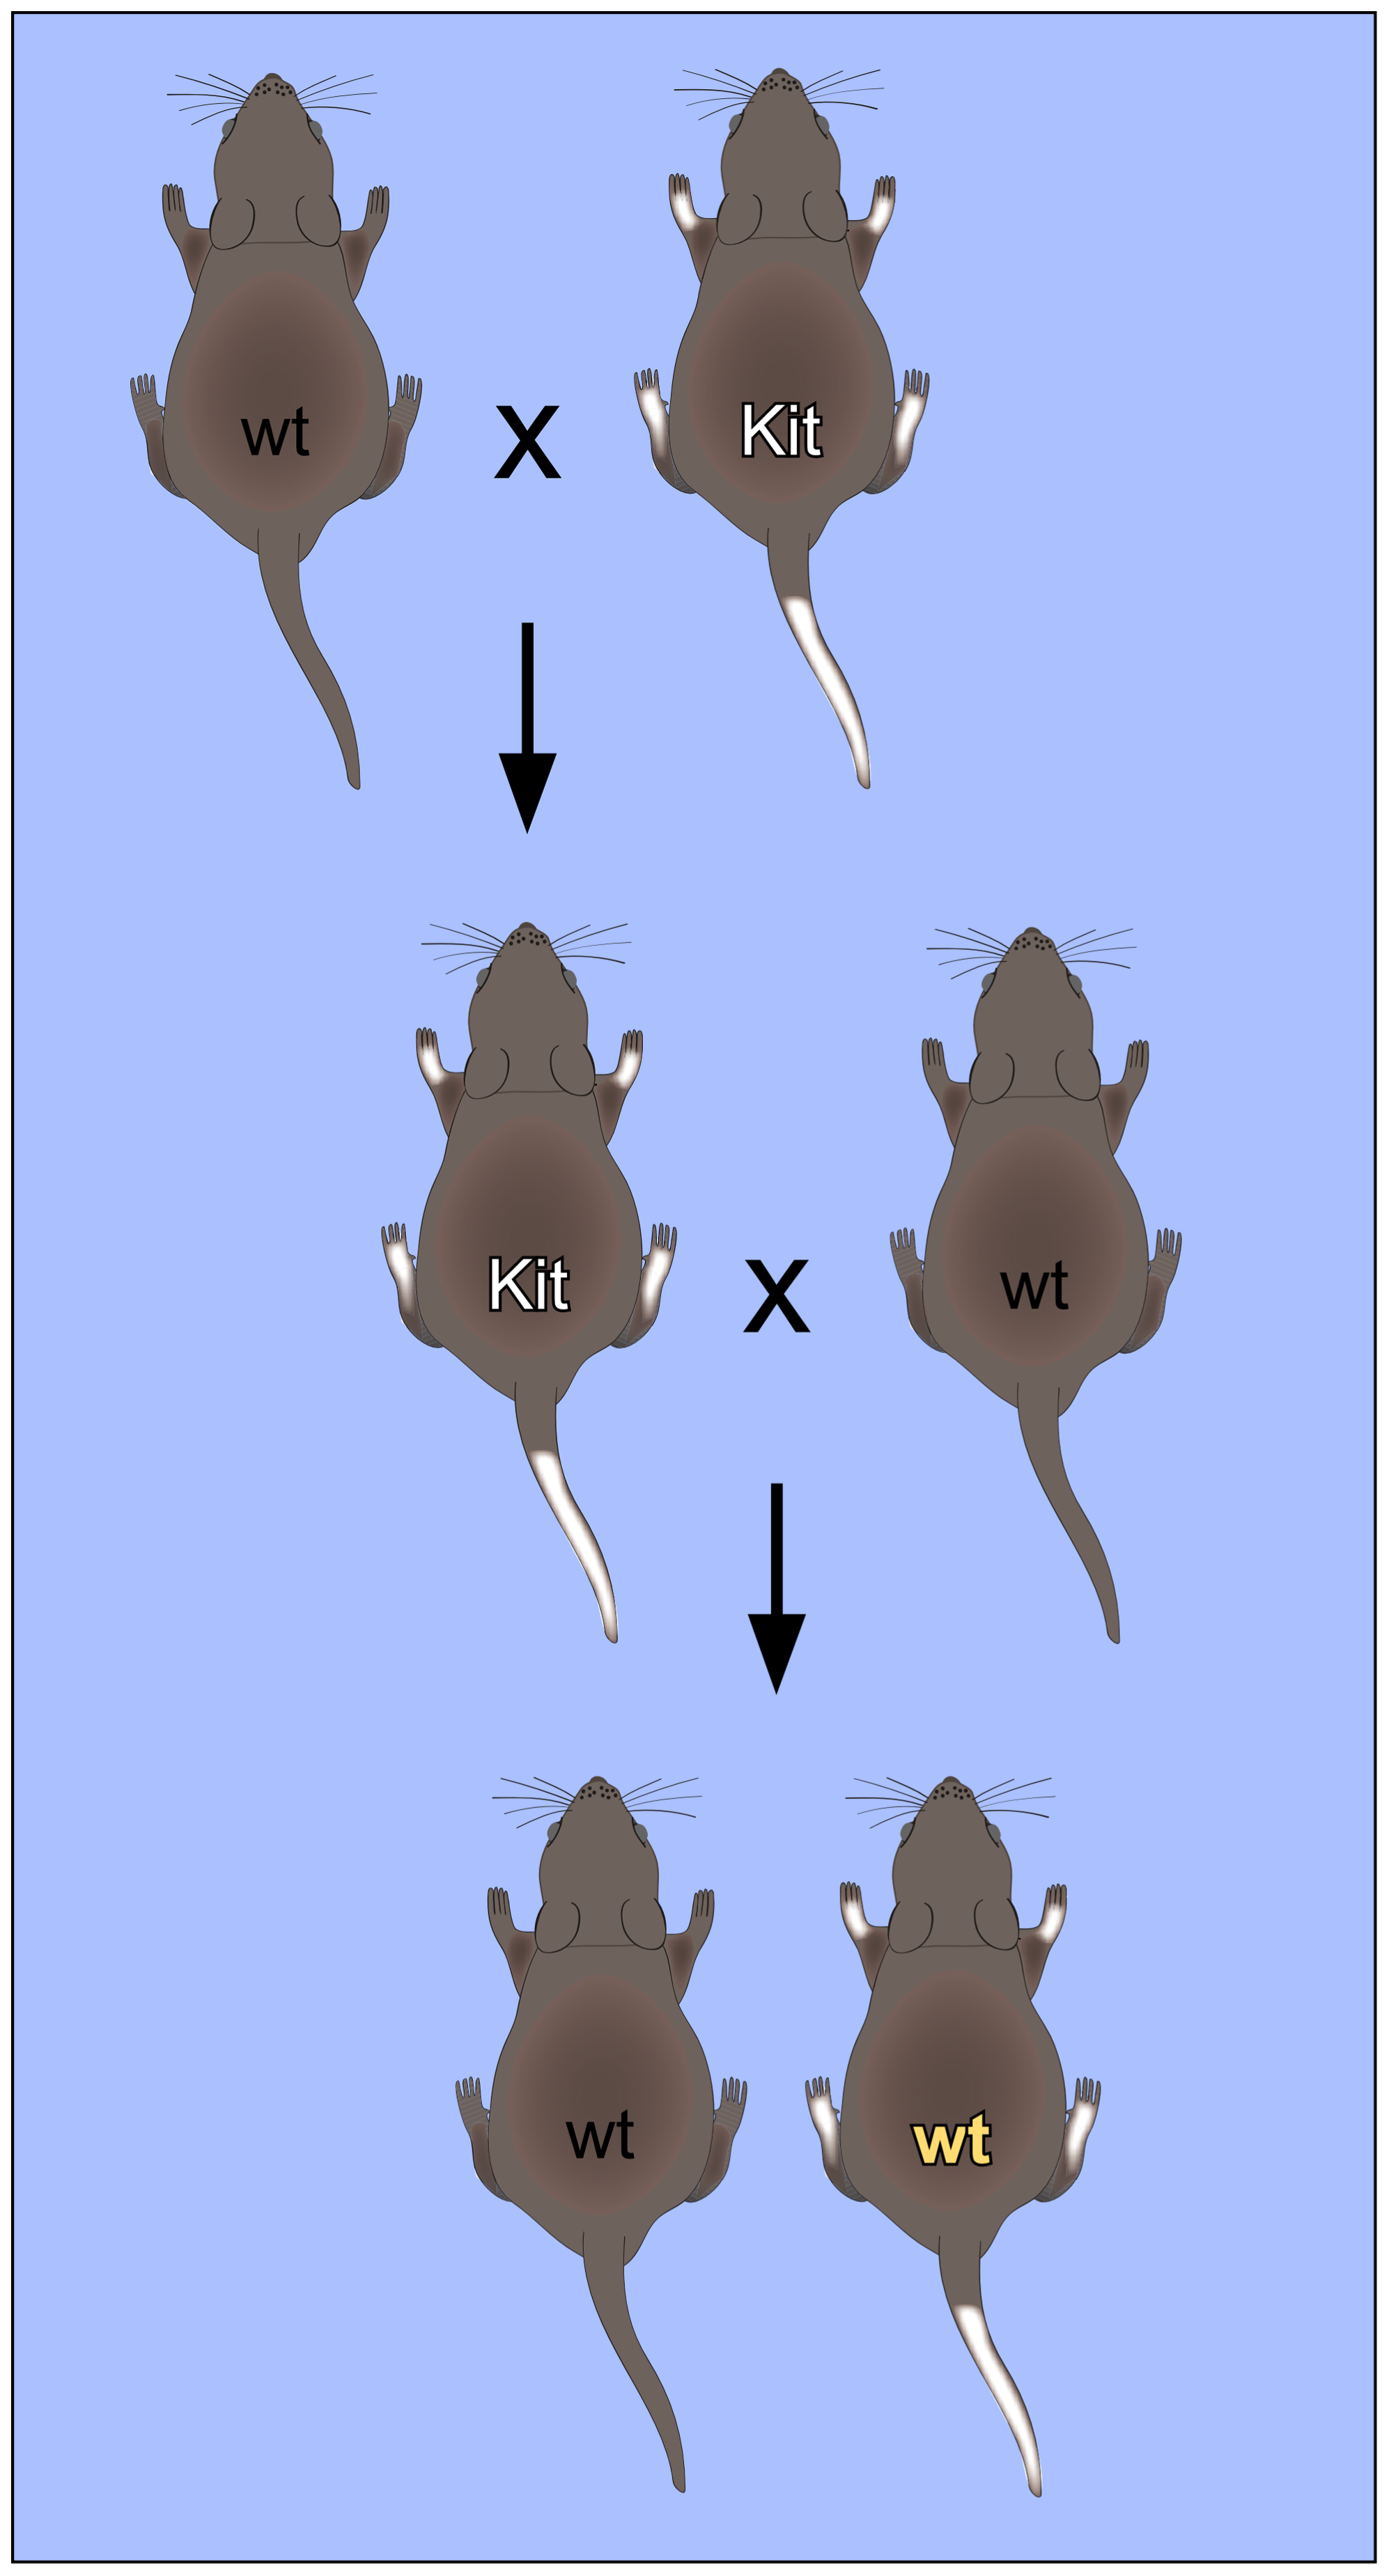 Non-Mendelian inheritance of mouse paramutations.